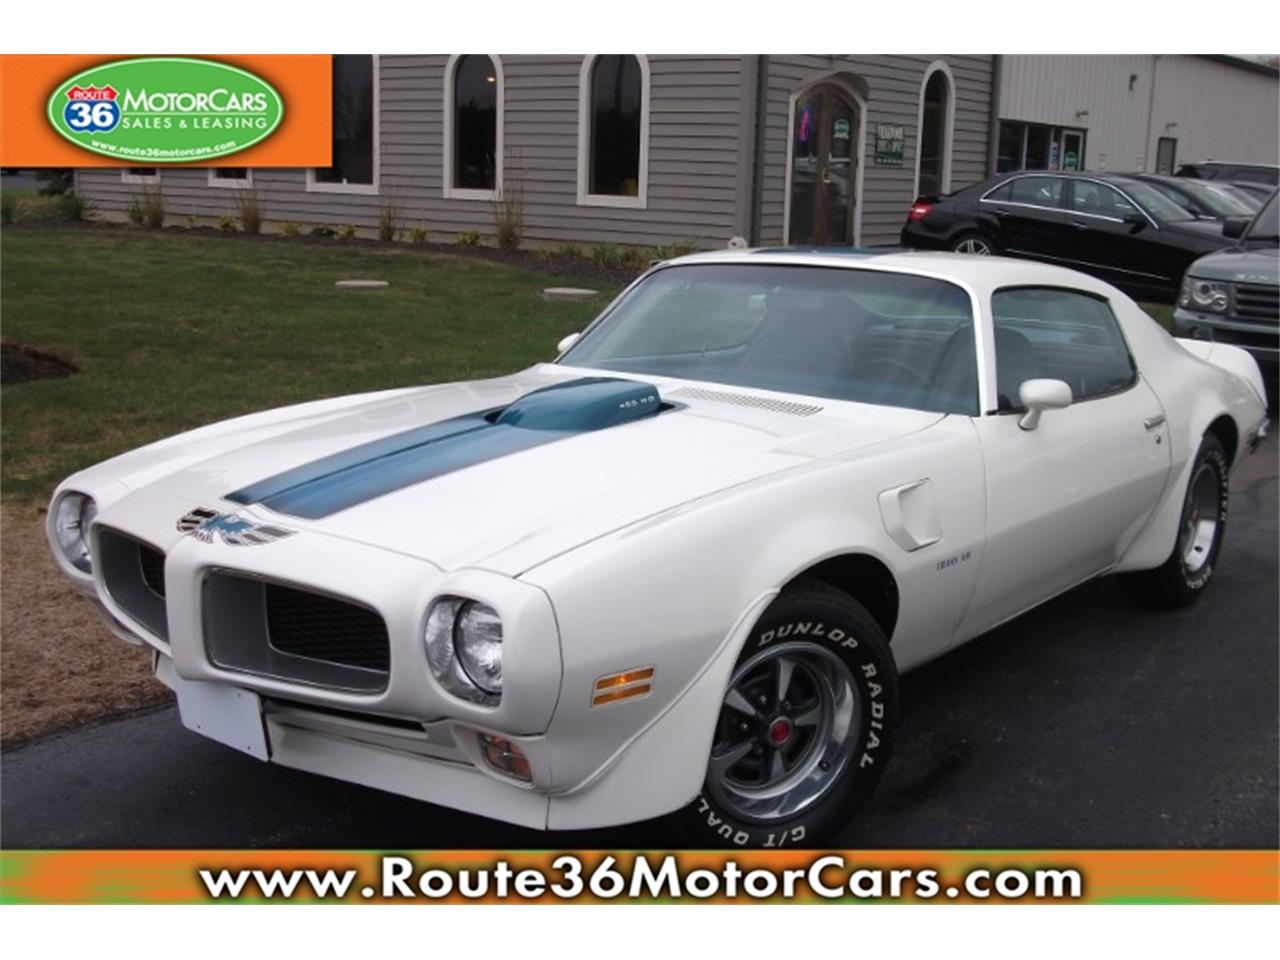 Large Picture of '72 Pontiac Firebird - $54,975.00 Offered by Route 36 Motor Cars - IKH6